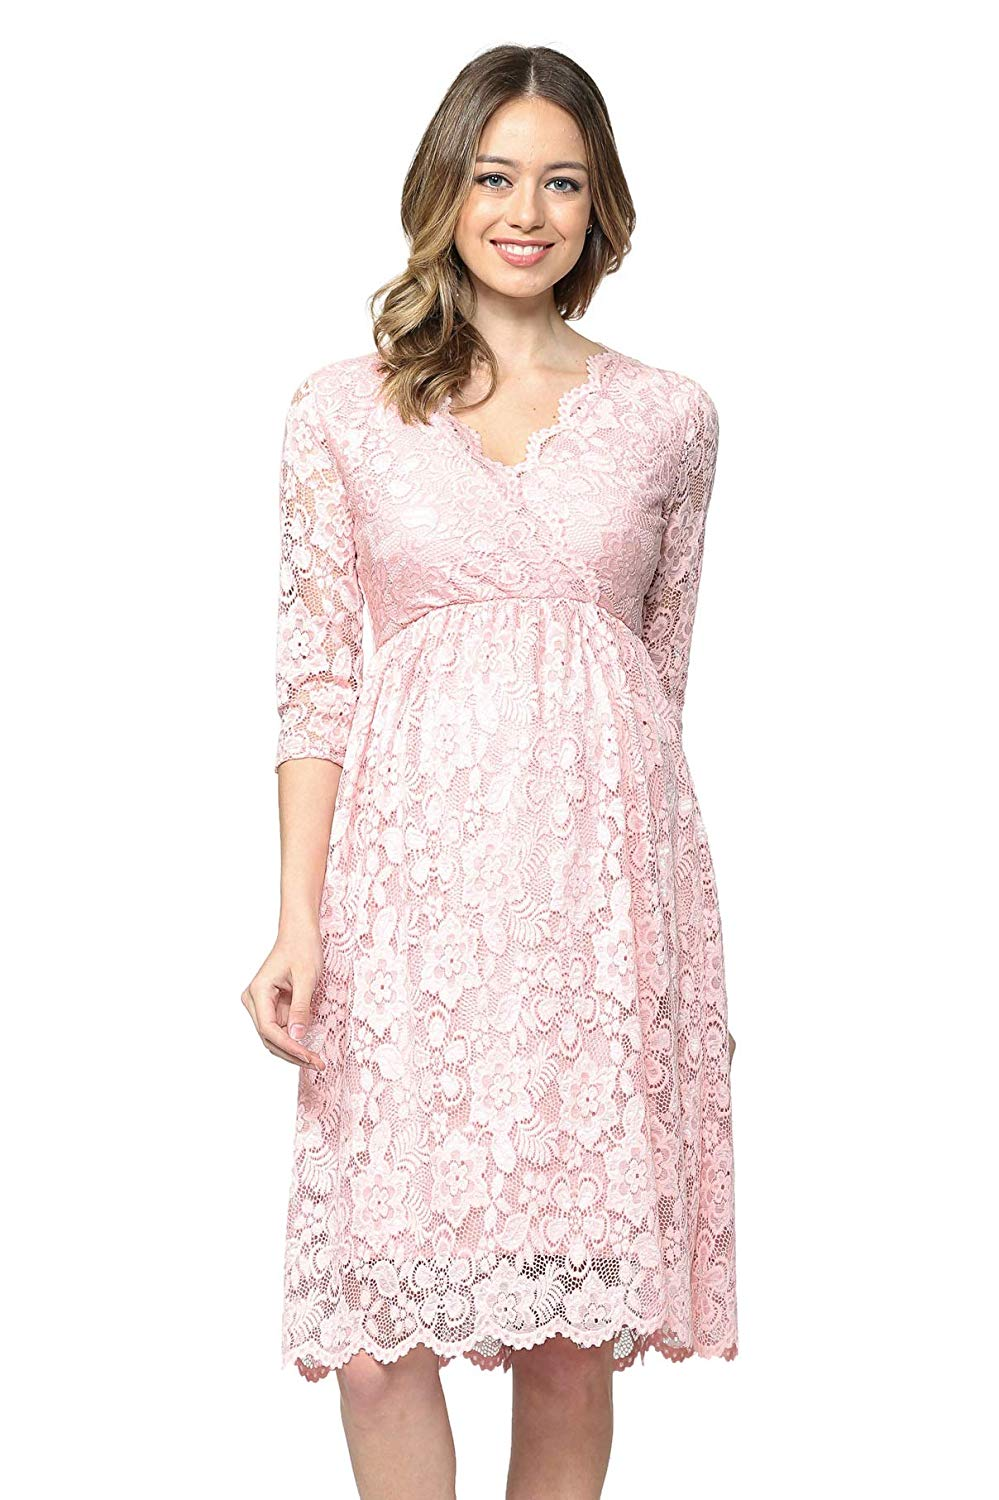 Scalloped Pink Lace Baby Shower Dress